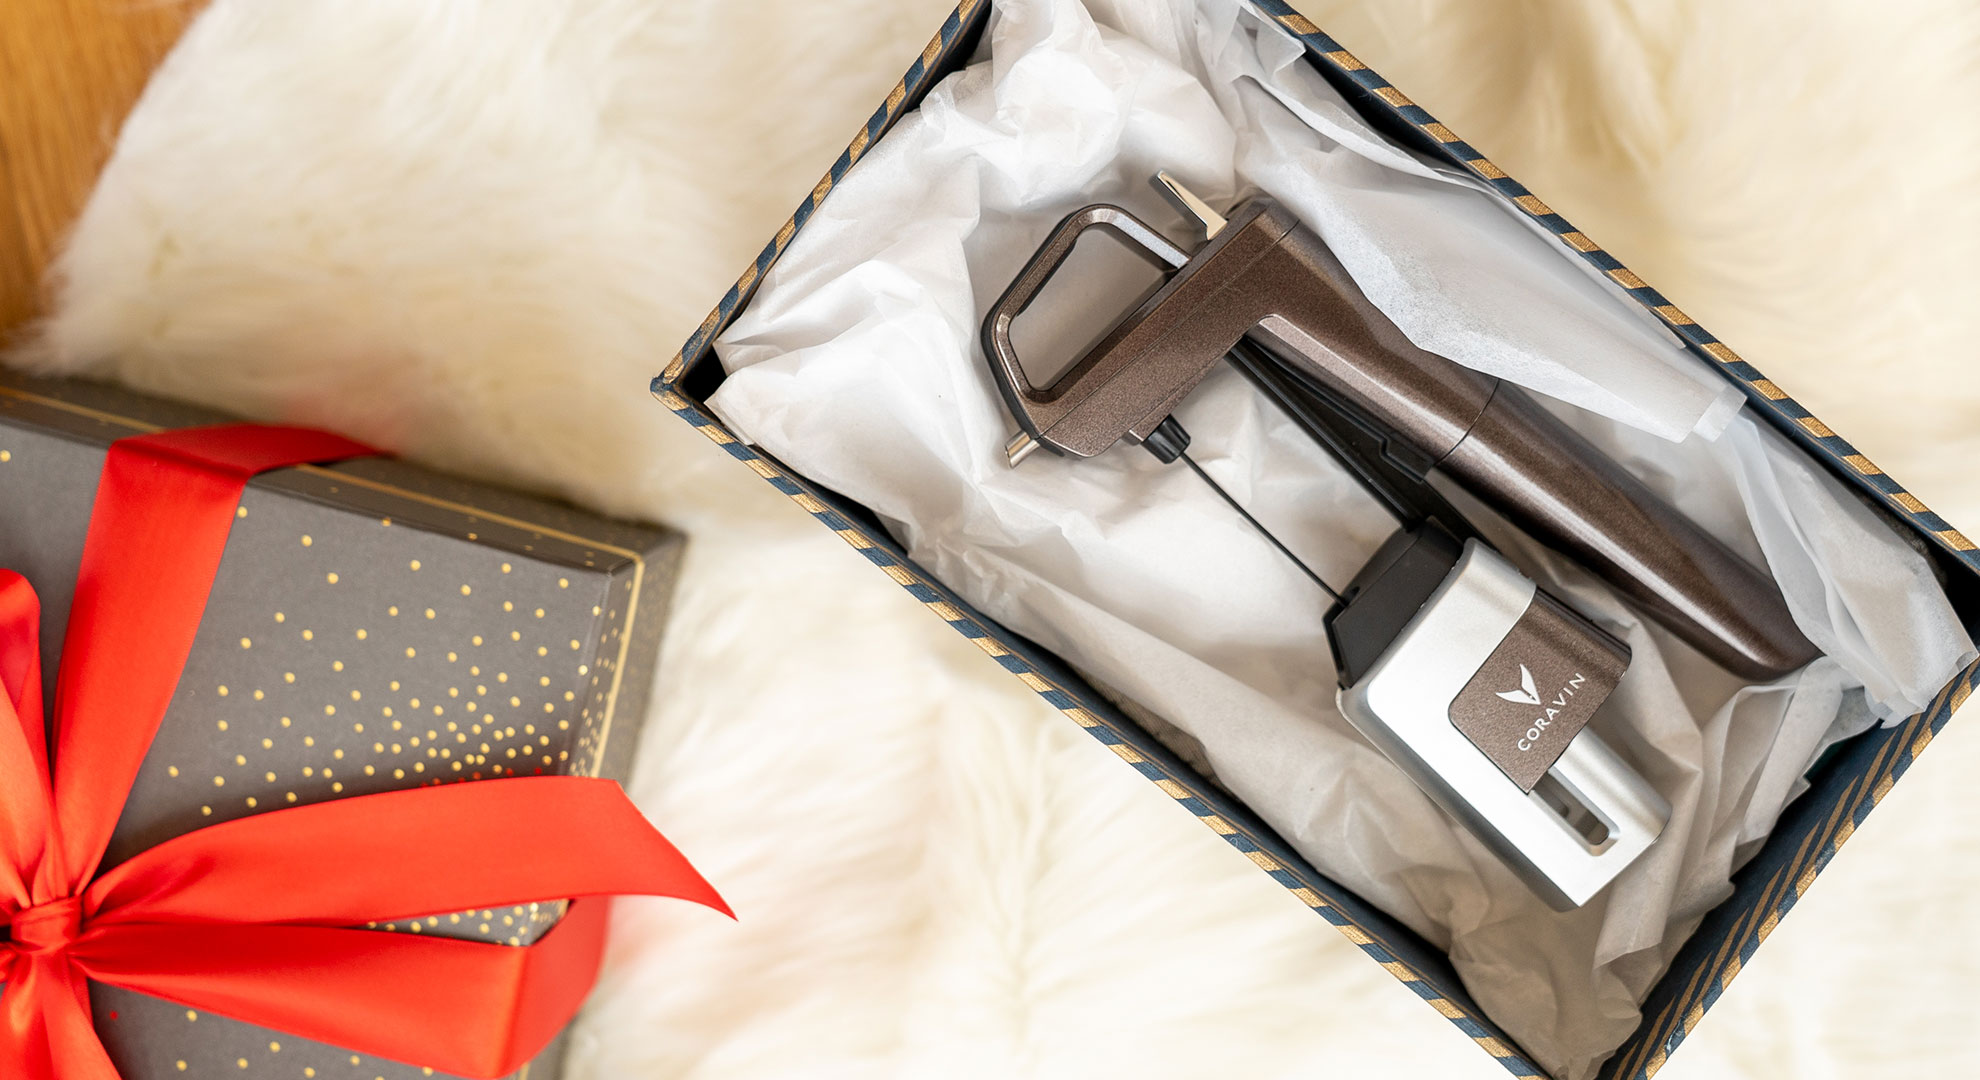 Coravin Limited Edition Mica Wine Preservation System laying in a holiday gift box